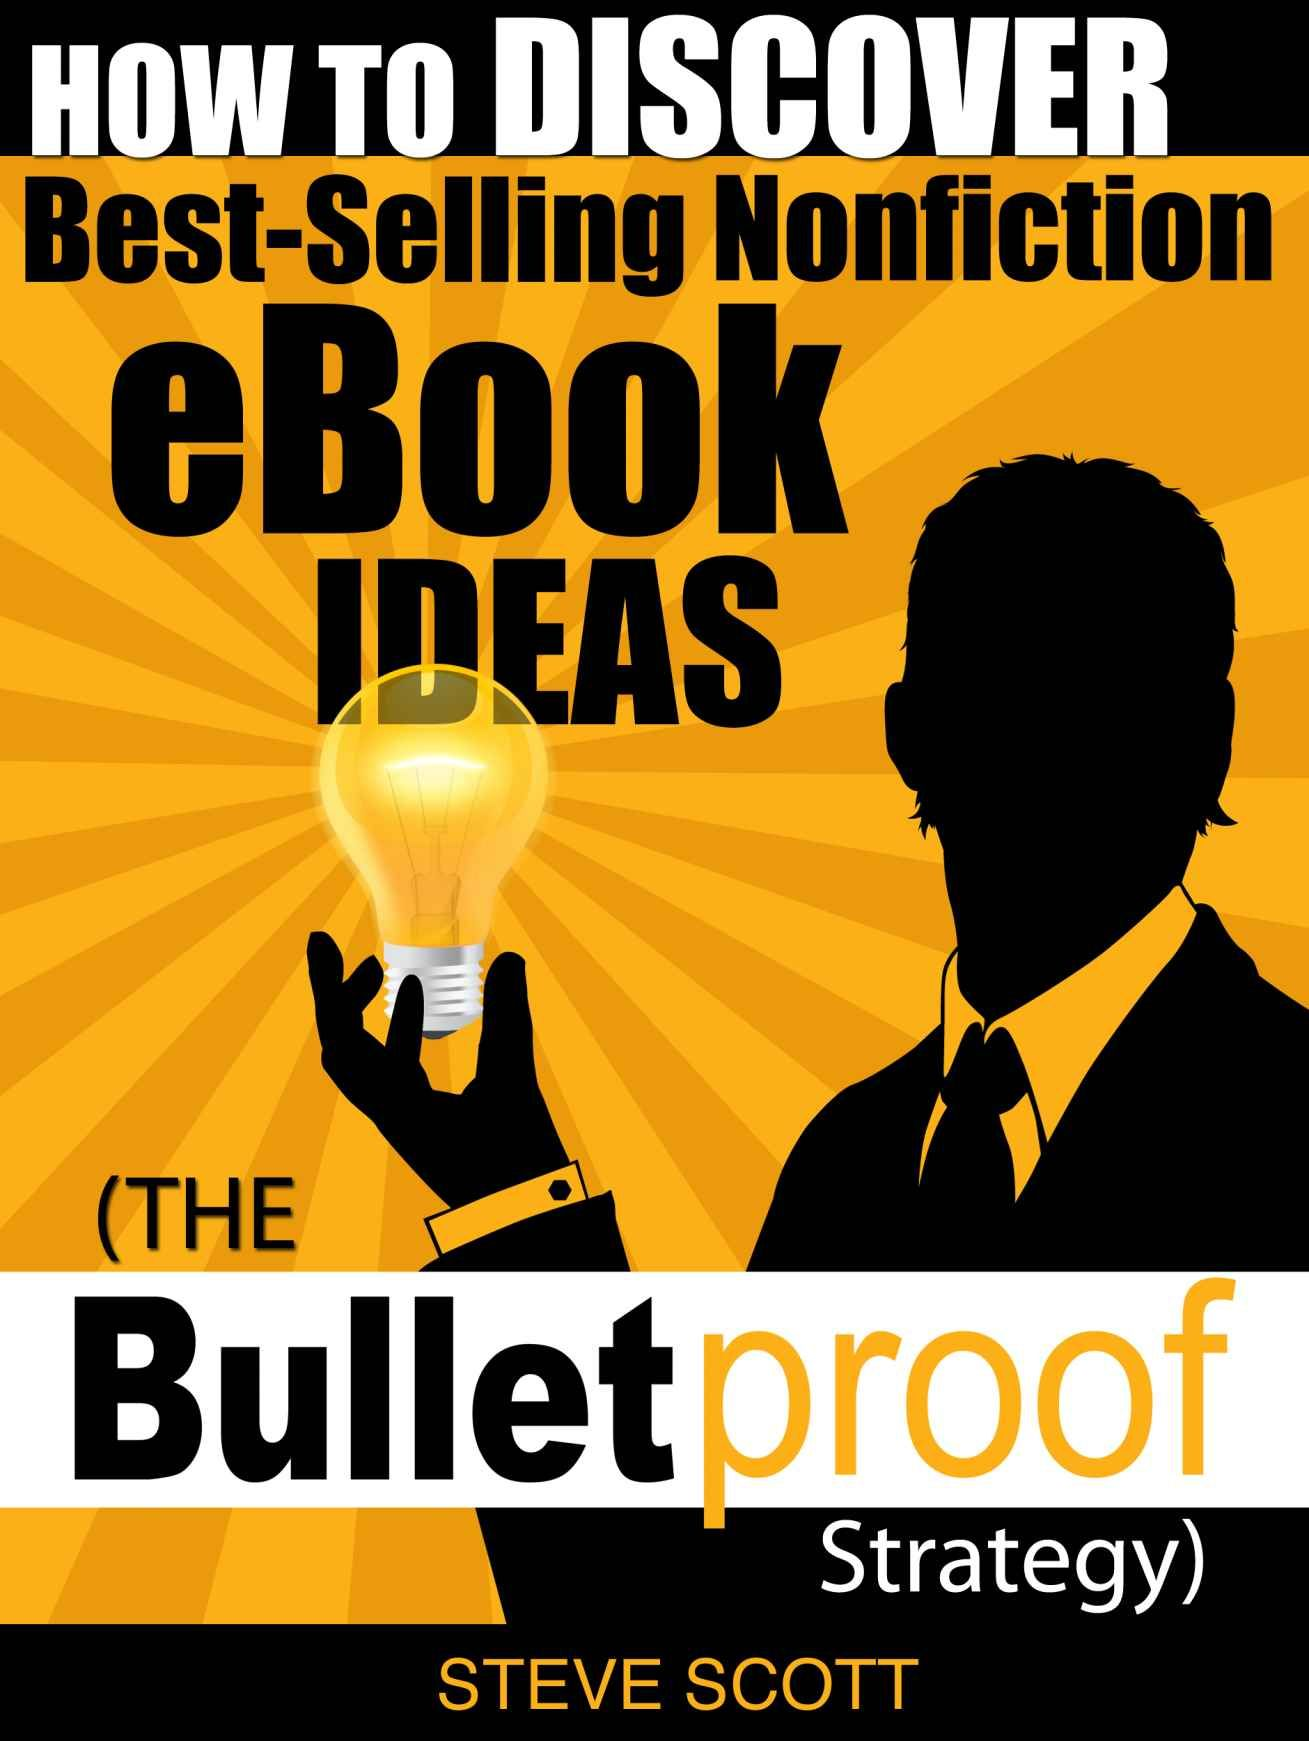 How to Discover BestSelling Nonfiction eBook